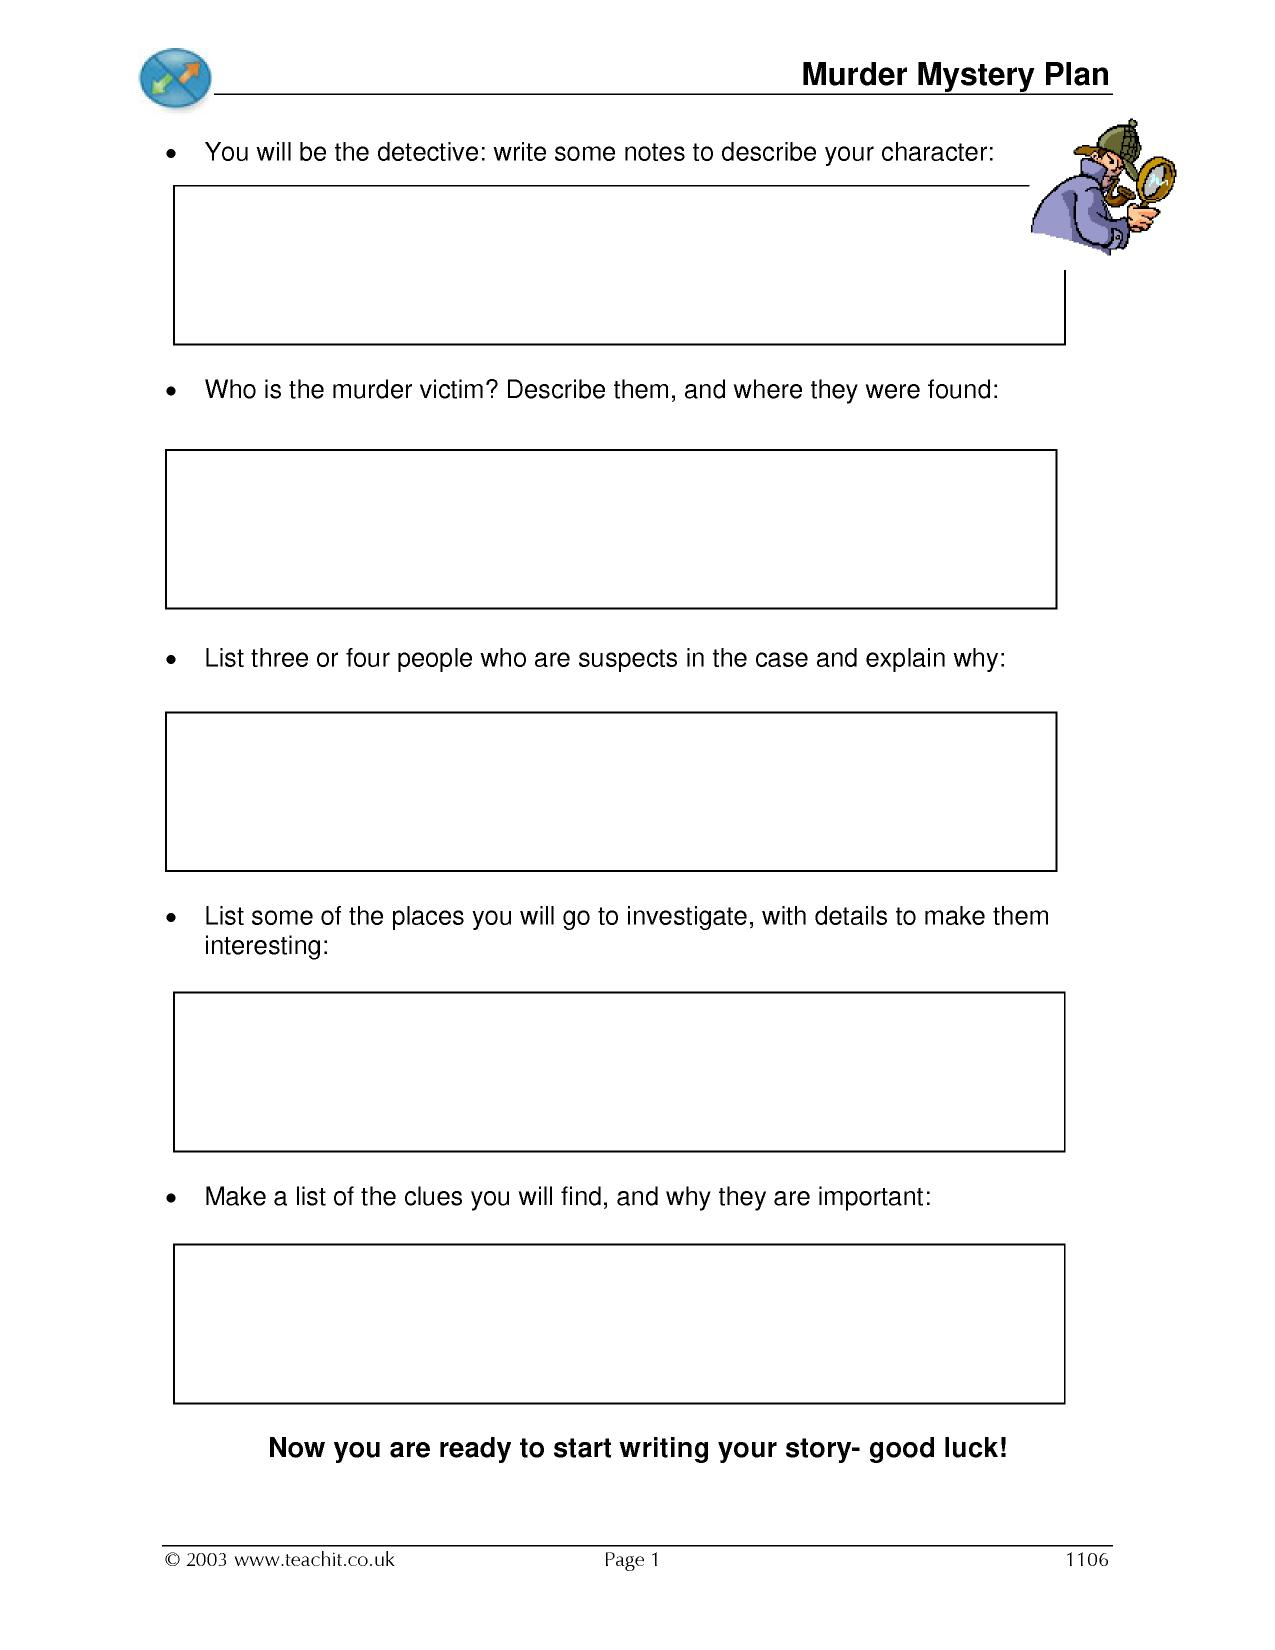 imaginative writing ks3 writing key stage 3 resources 0 preview